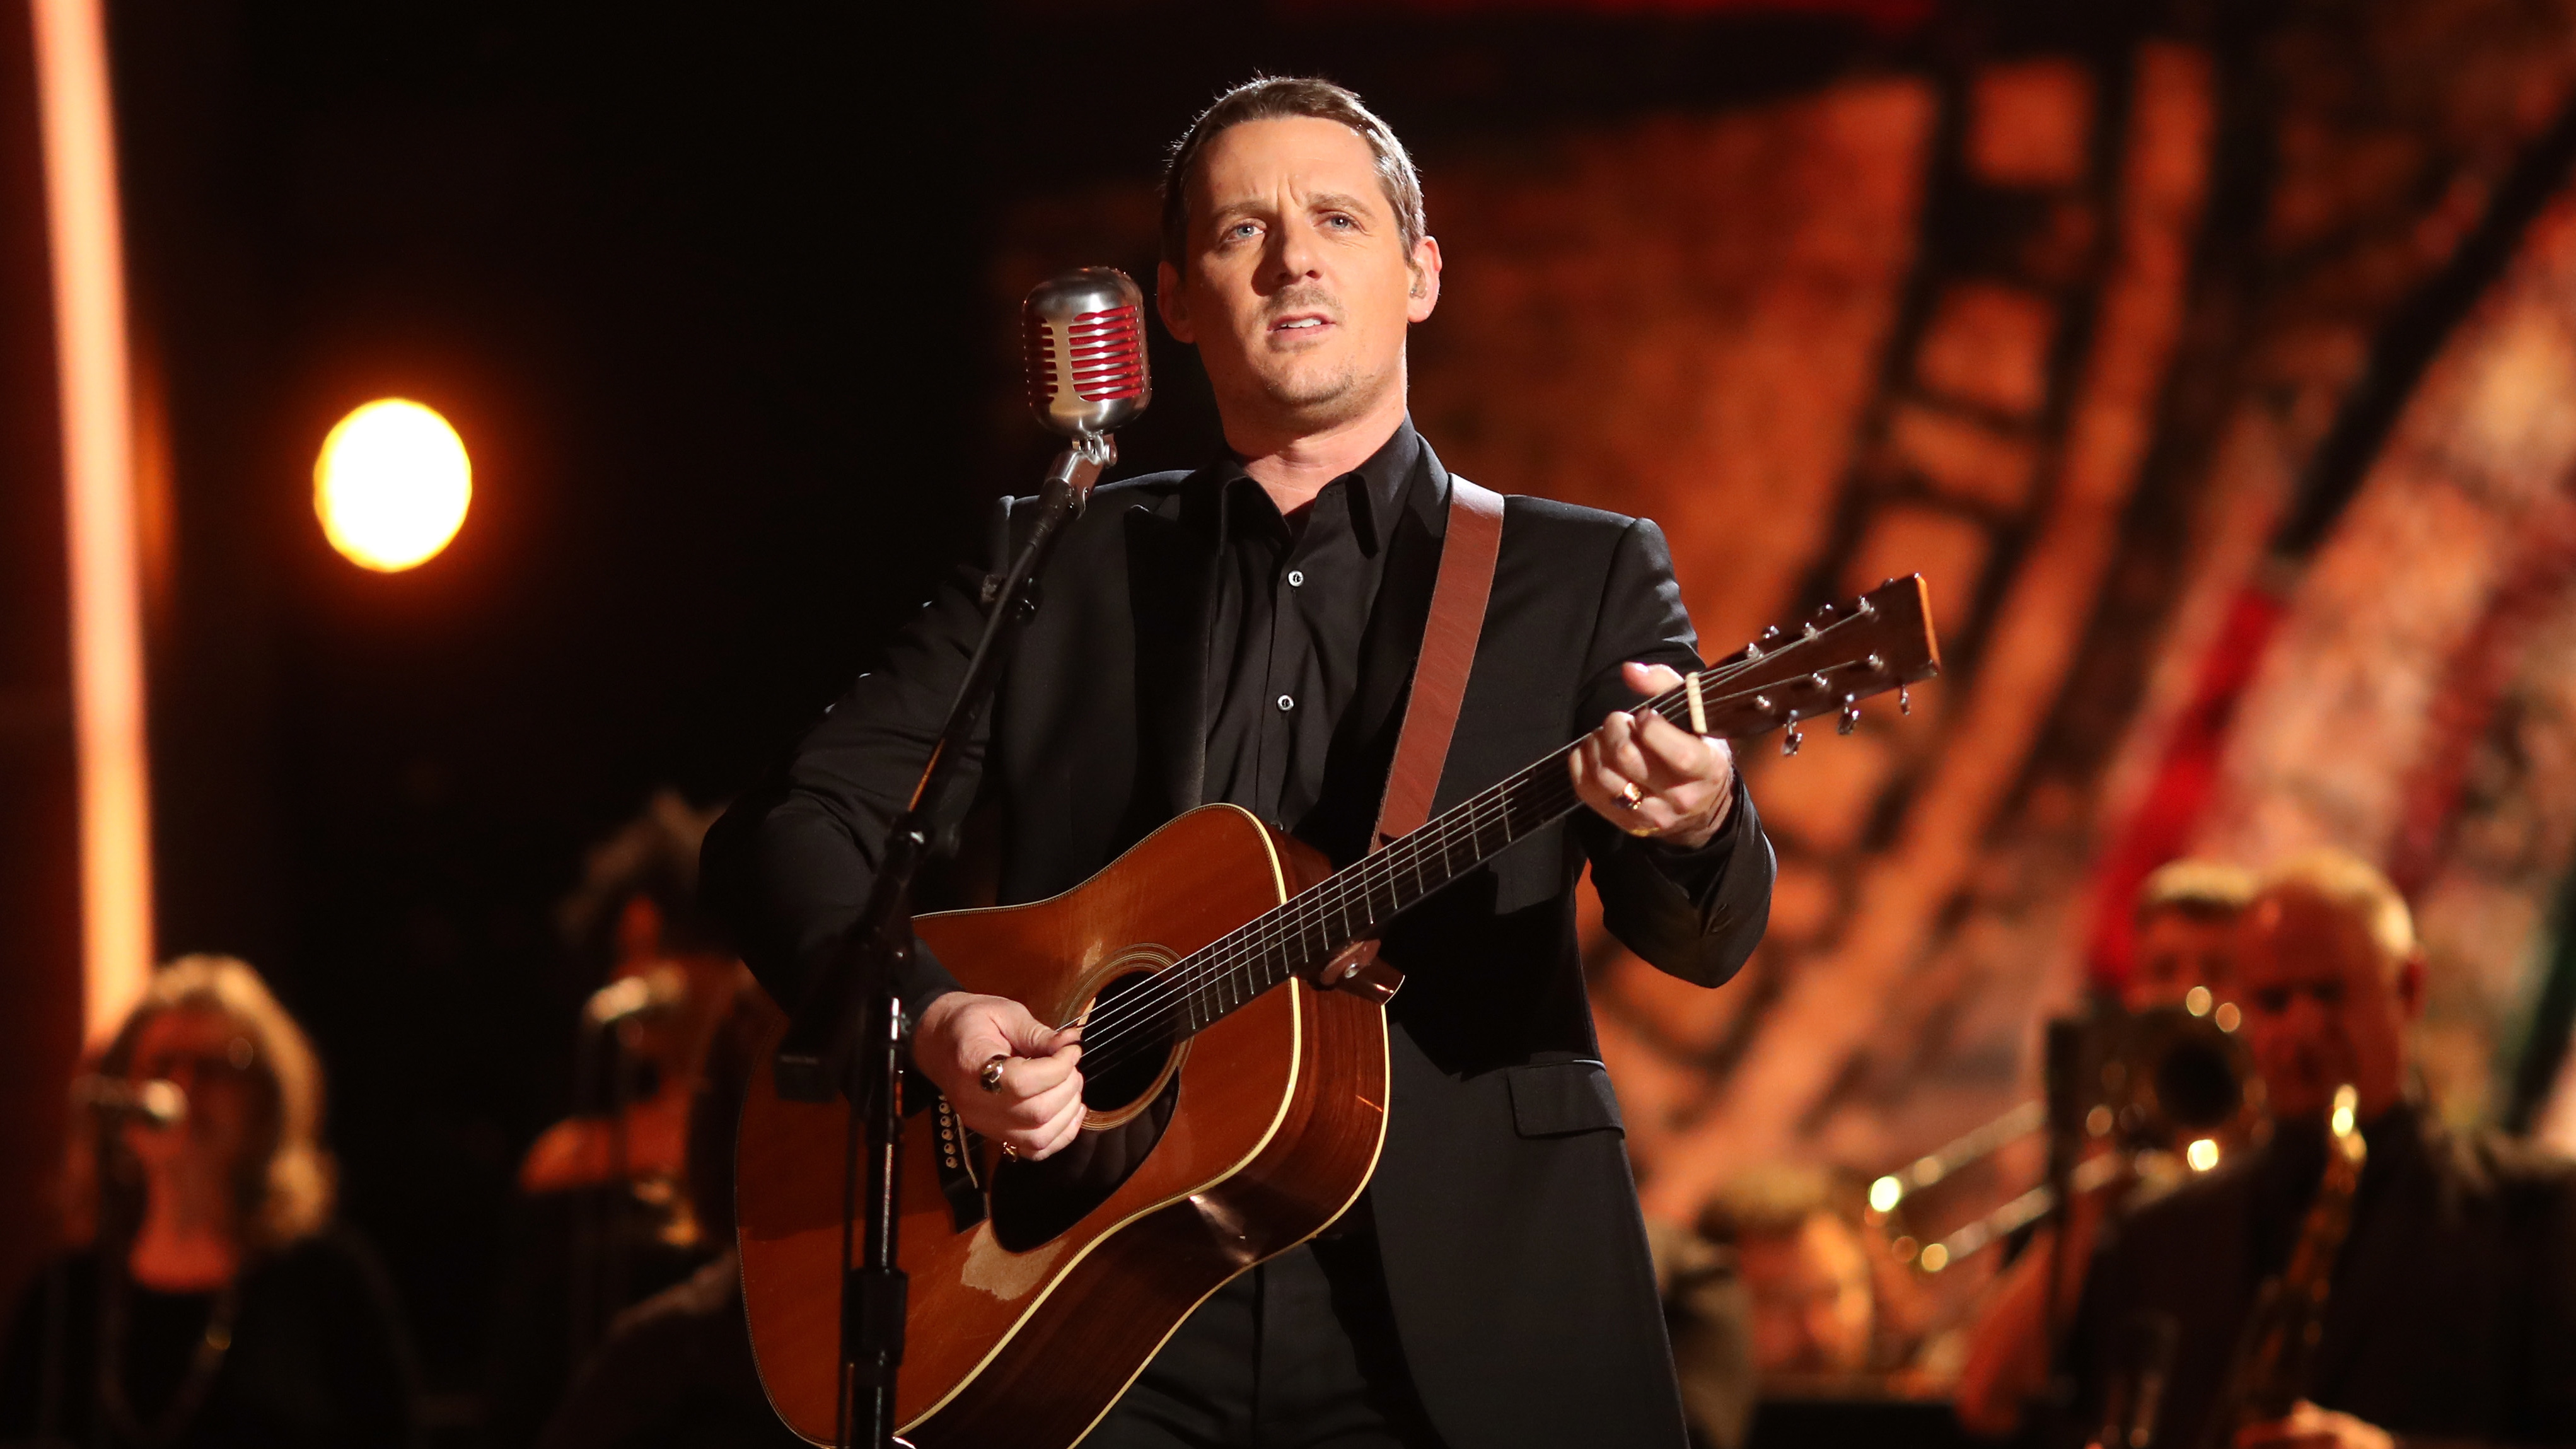 Sturgill Simpson, seen performing at the 2017 Grammys, is one of the featured artists in Oxford American's Southern music issue about Kentucky.